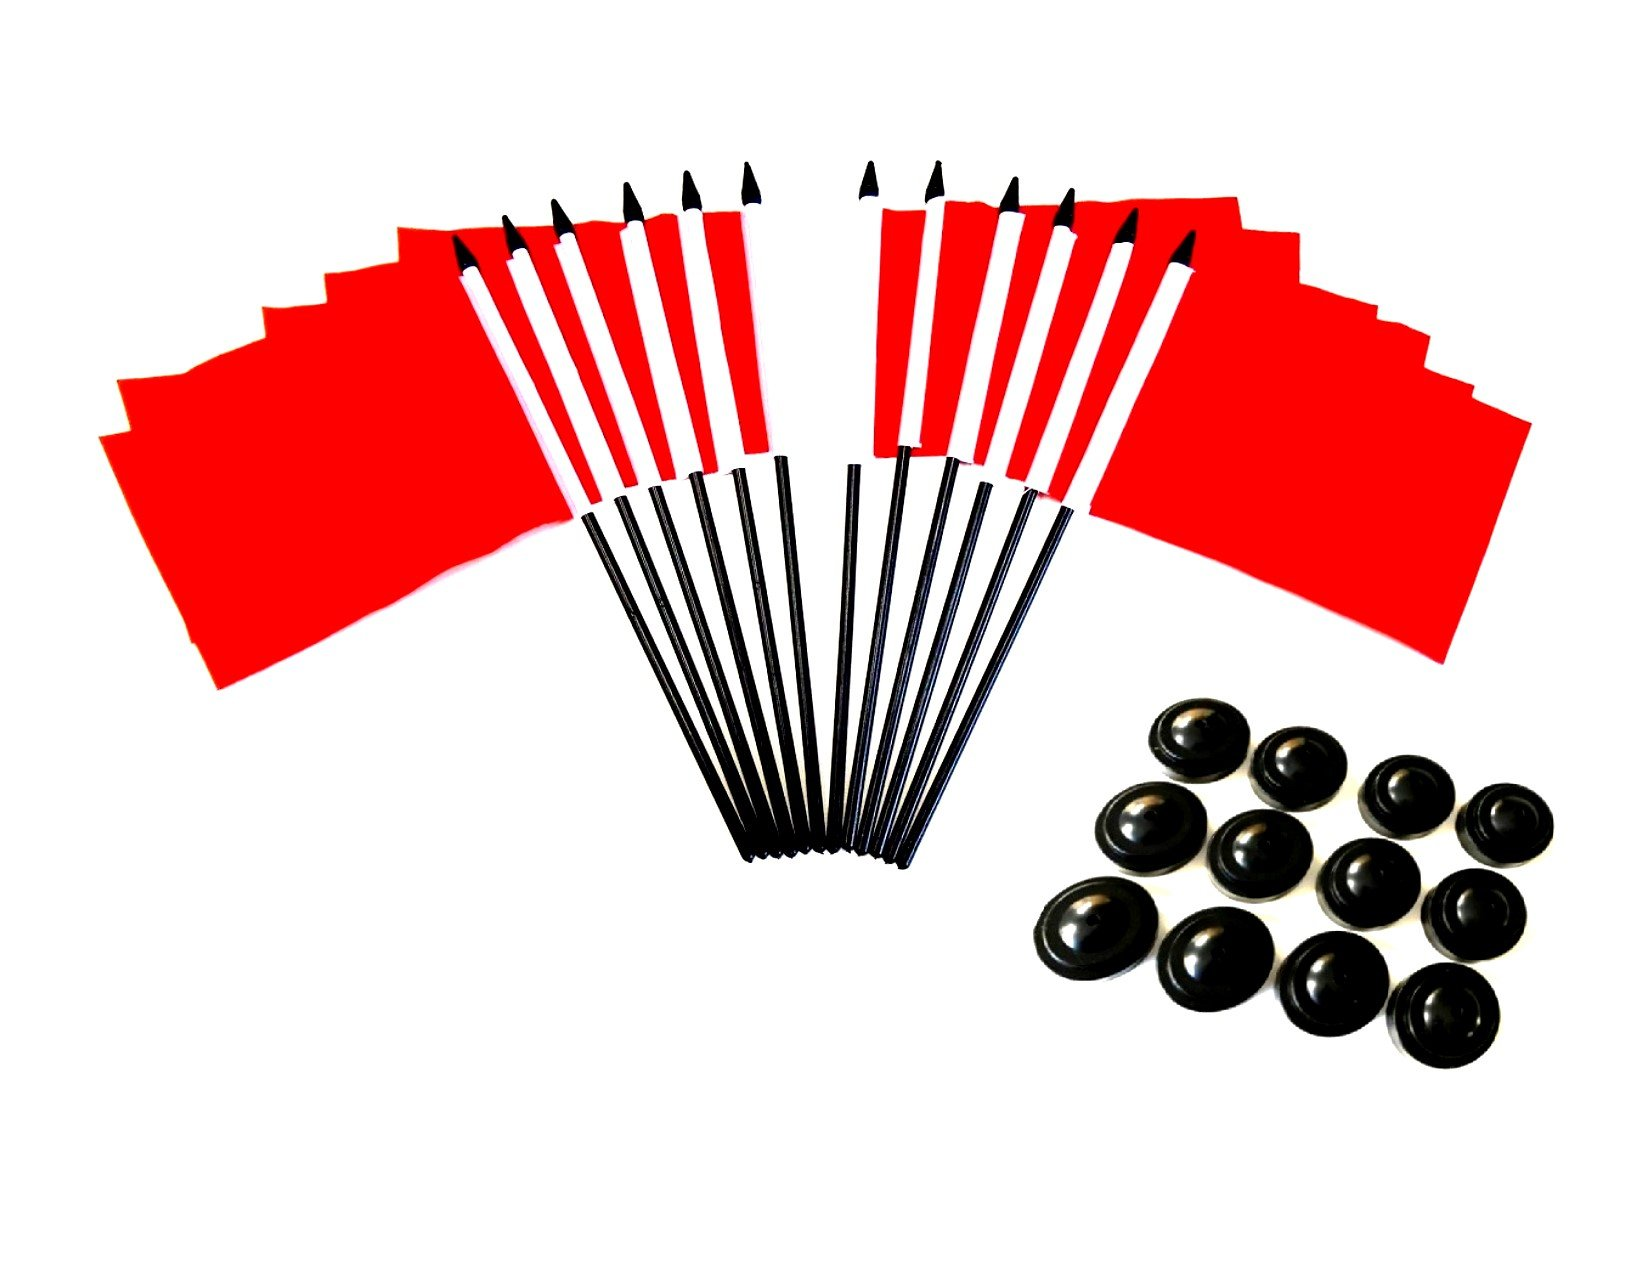 Pack of 12 4''x6'' Red Polyester Miniature Office Desk & Little Table Flags, 1 Dozen 4x6 Red Small Mini Handheld Waving Stick Flags with 12 Flag Bases (Stands)